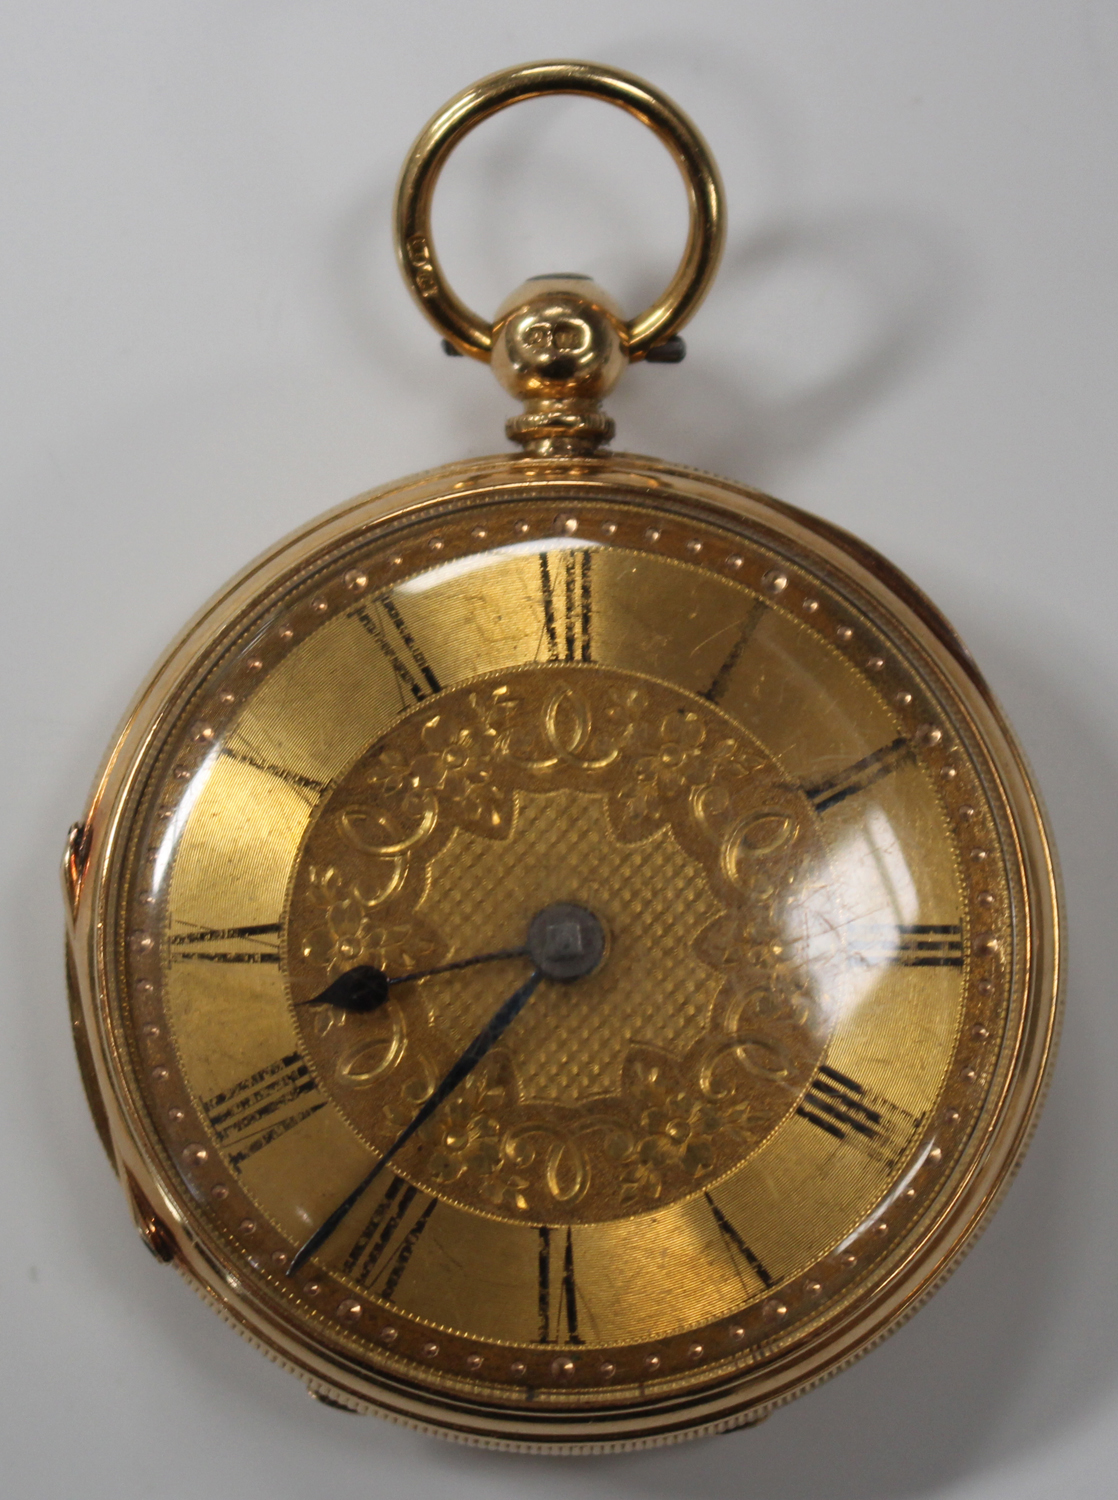 Lot 1048 - An 18ct gold cased keywind open-faced fob watch, the gilt movement detailed to the back plate 'Edwin